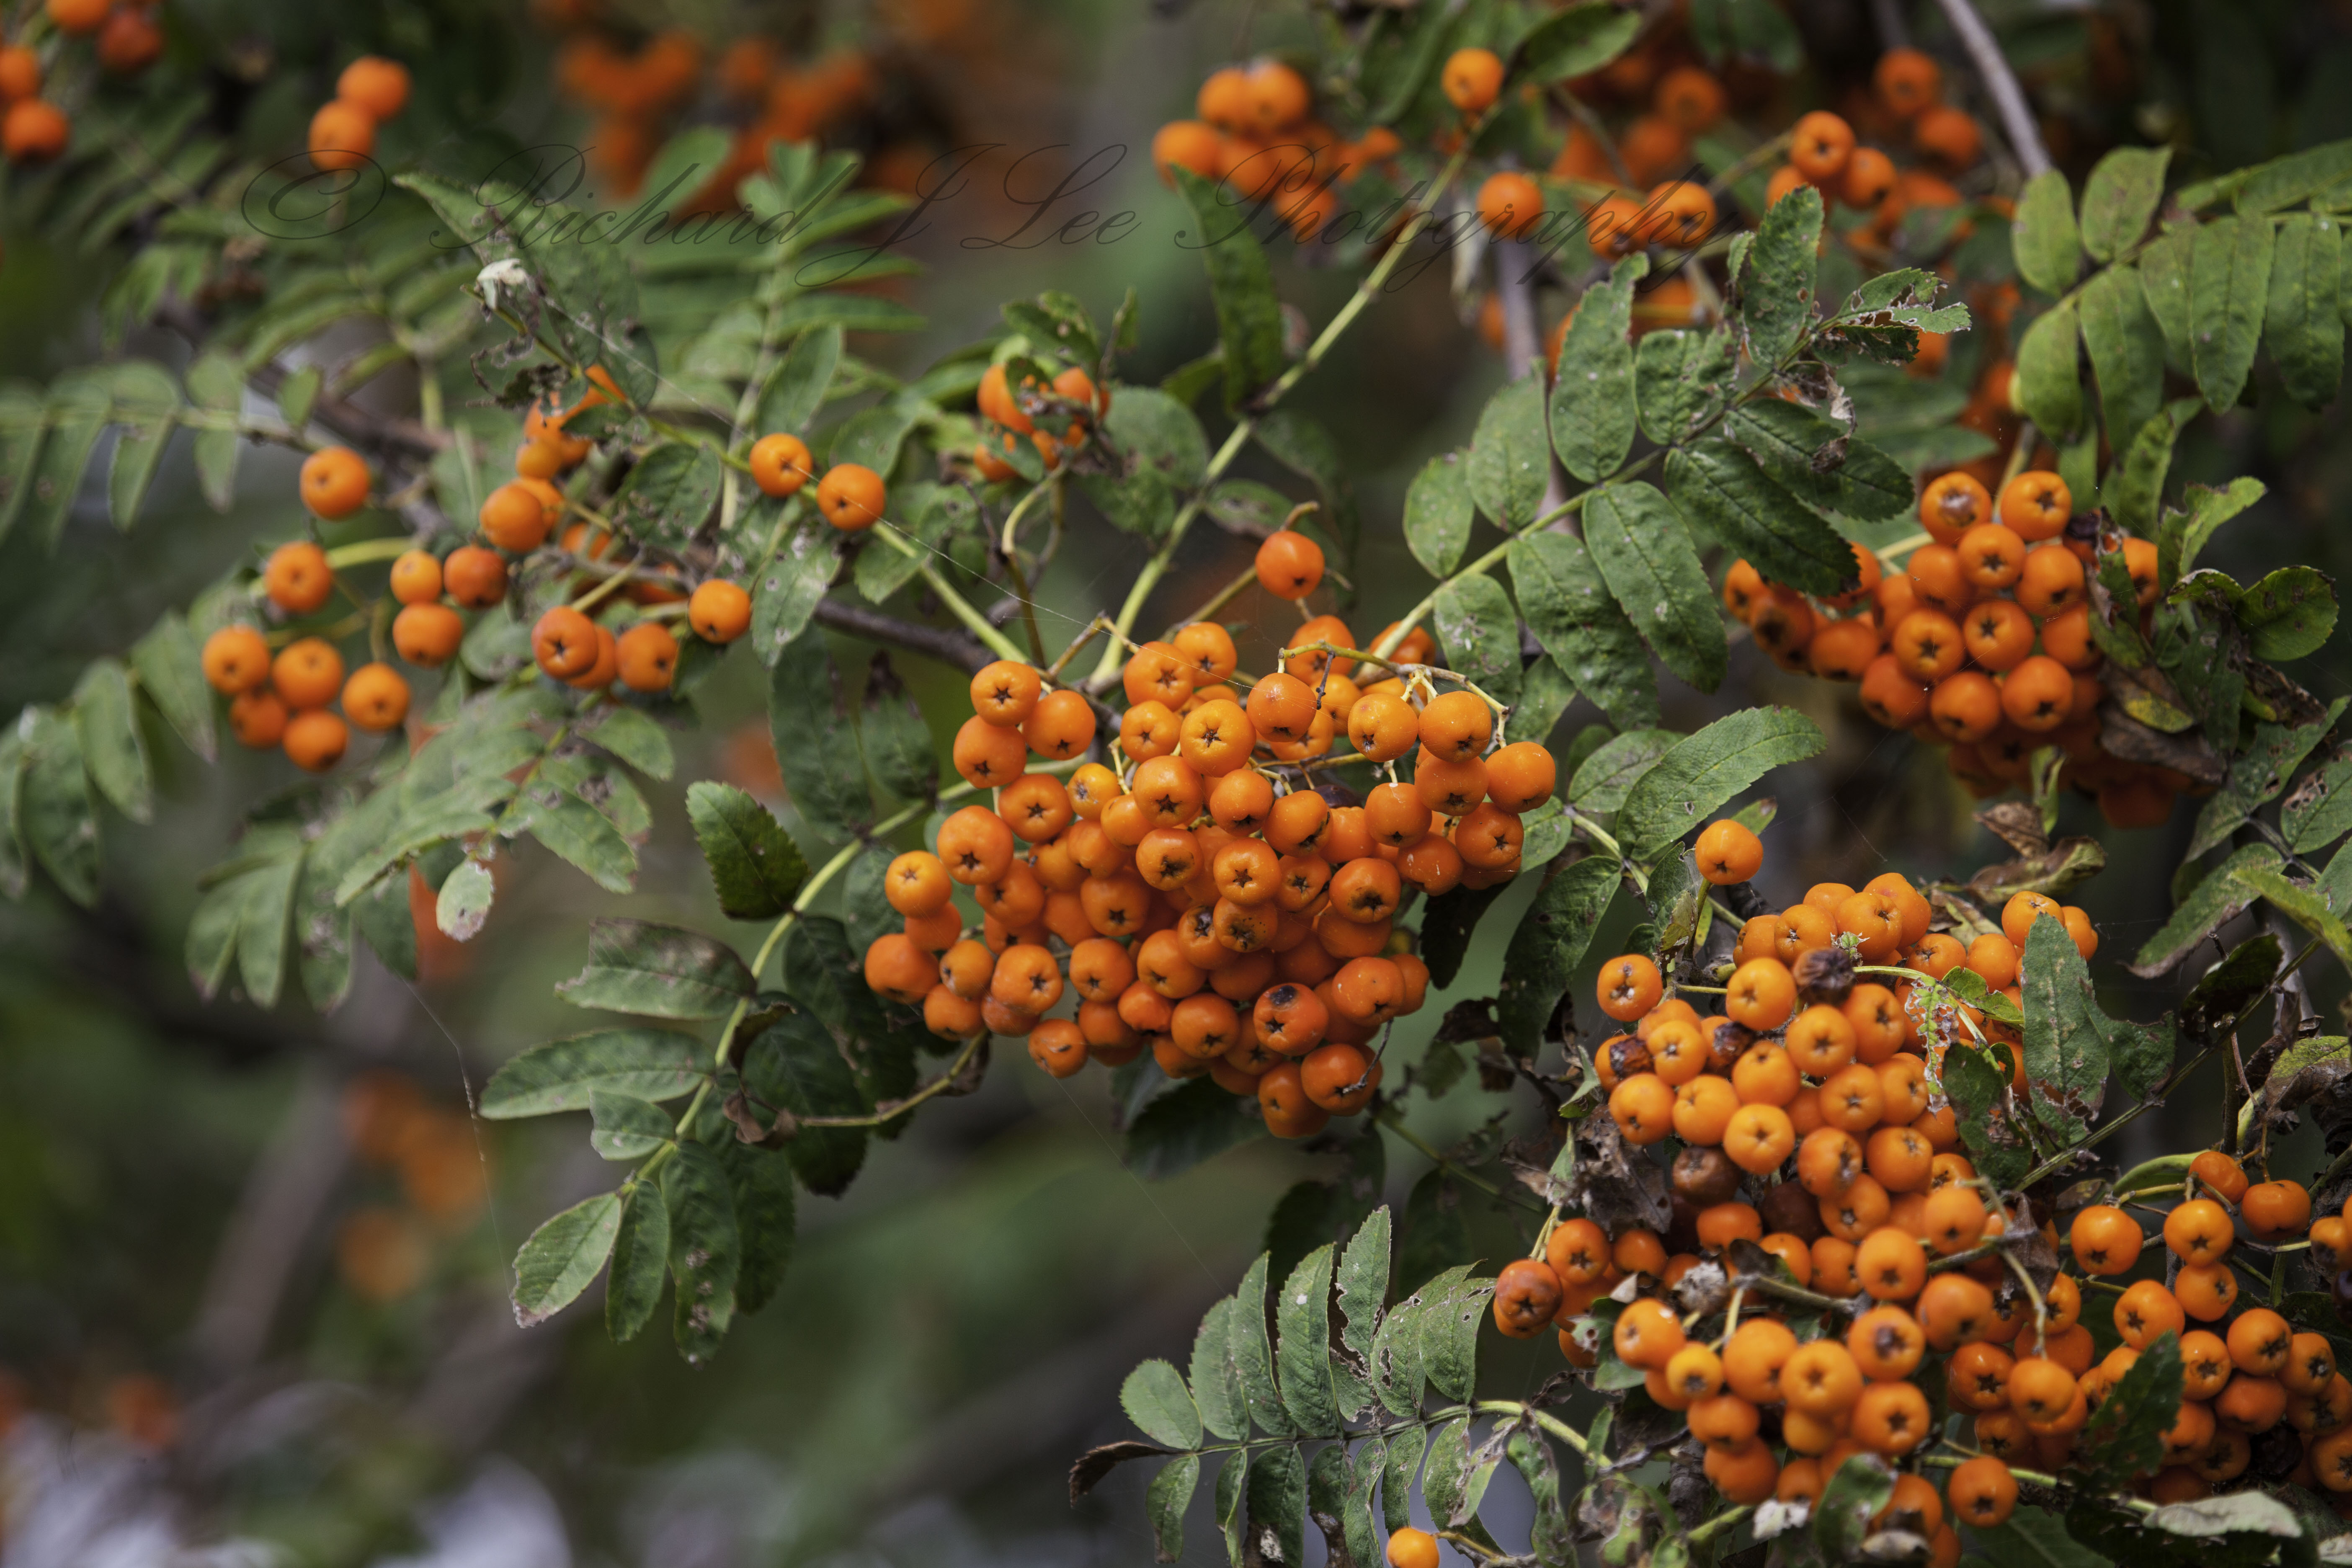 It is a rowan tree or mountain ash there now we both know